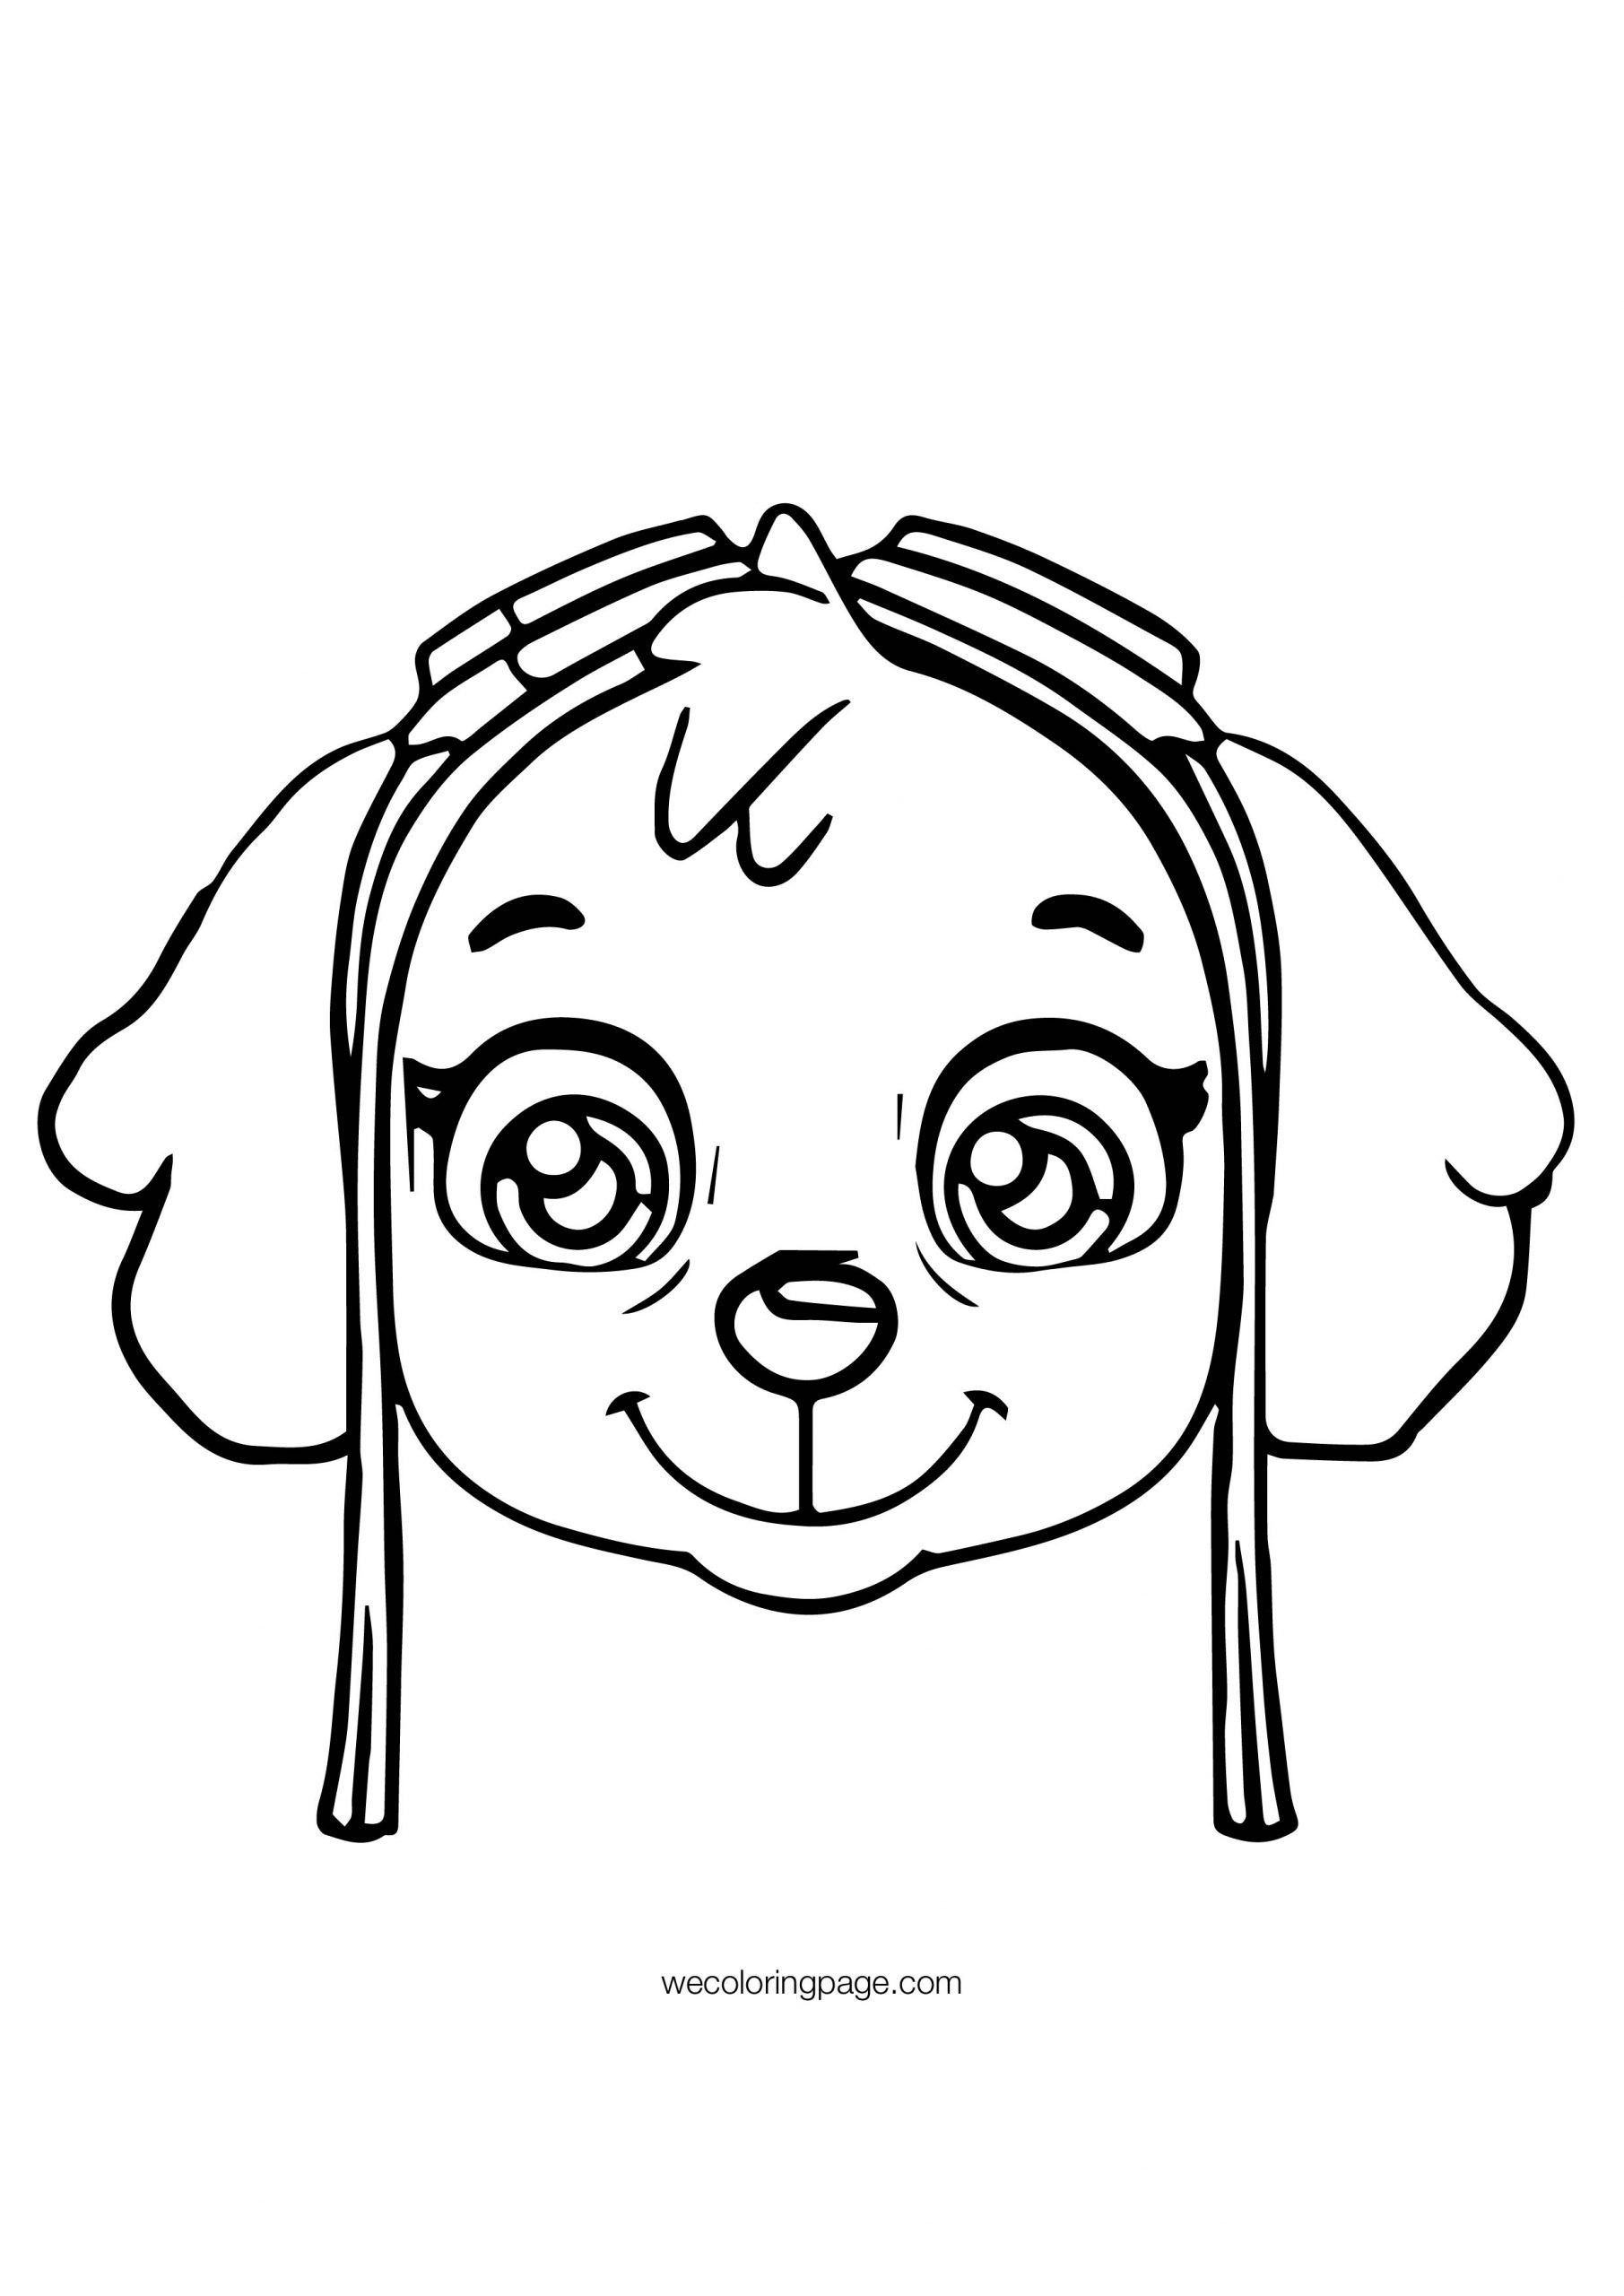 Skye Paw Patrol Coloring Page Youngandtae Com Paw Patrol Coloring Pages Paw Patrol Coloring Skye Paw